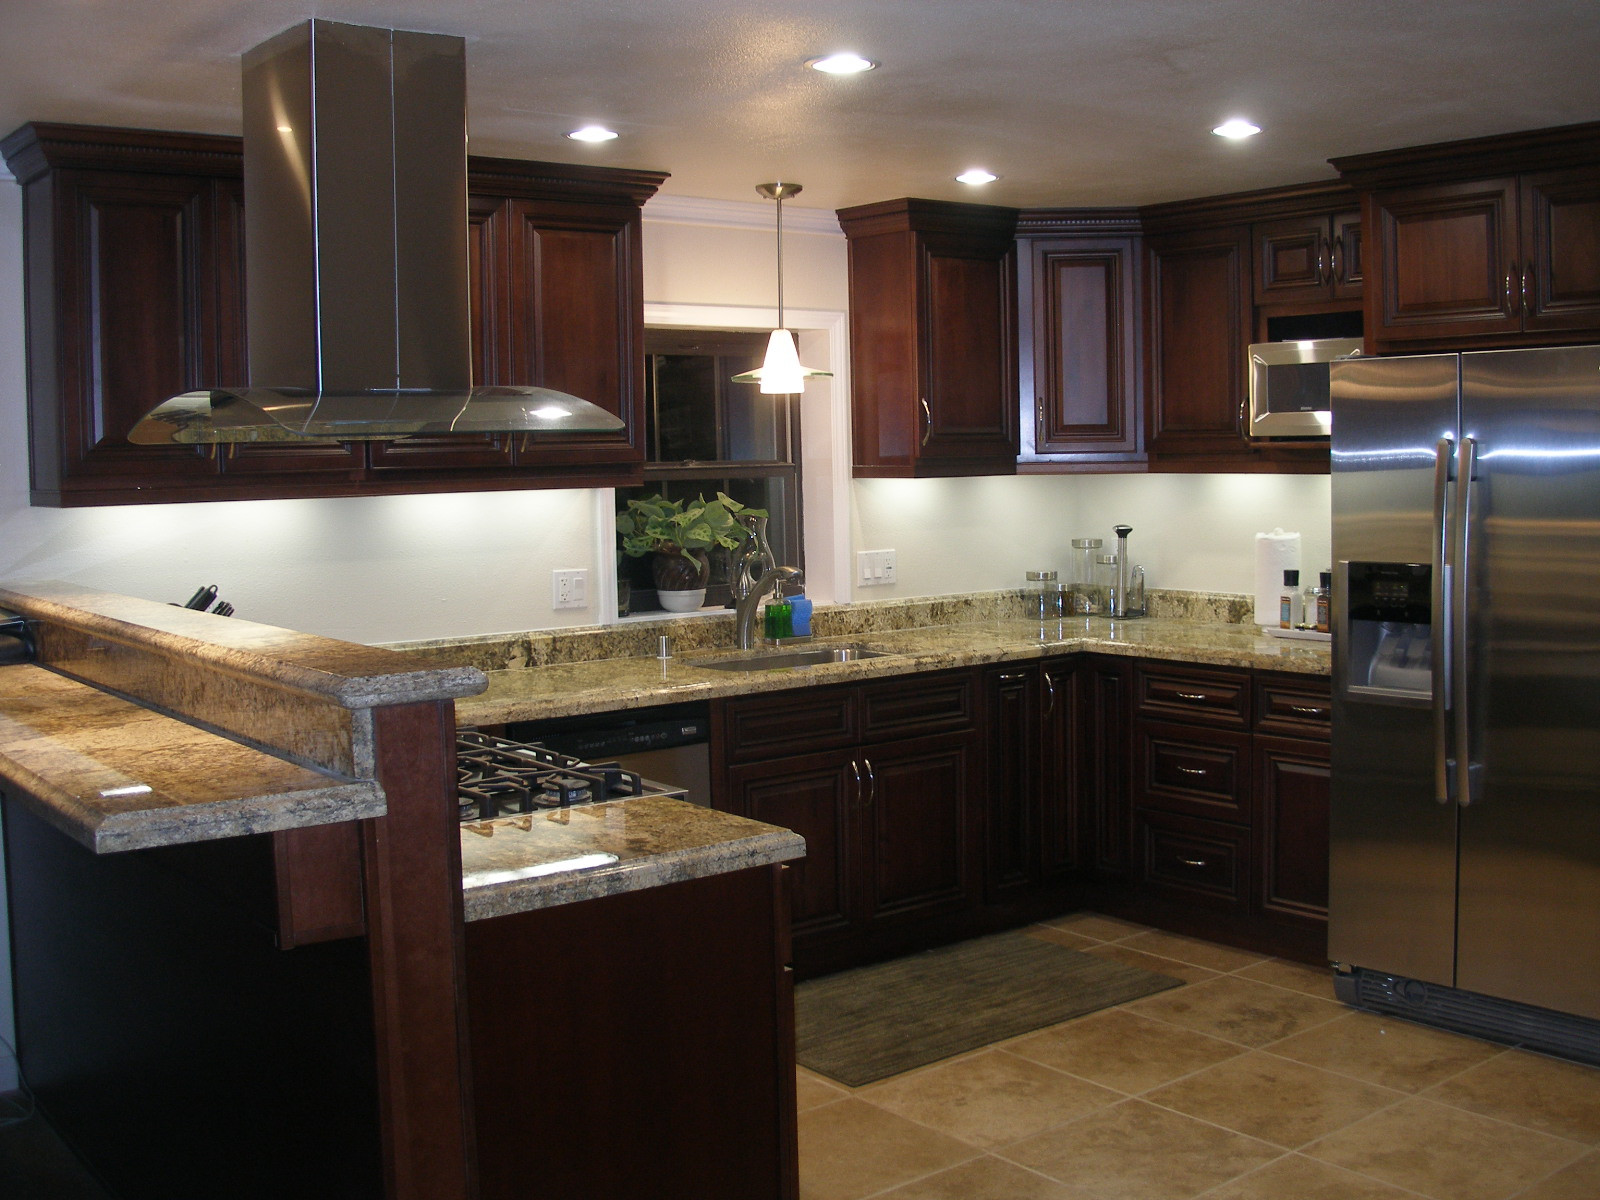 Kitchen remodel bay easy construction for Kitchen rehab ideas